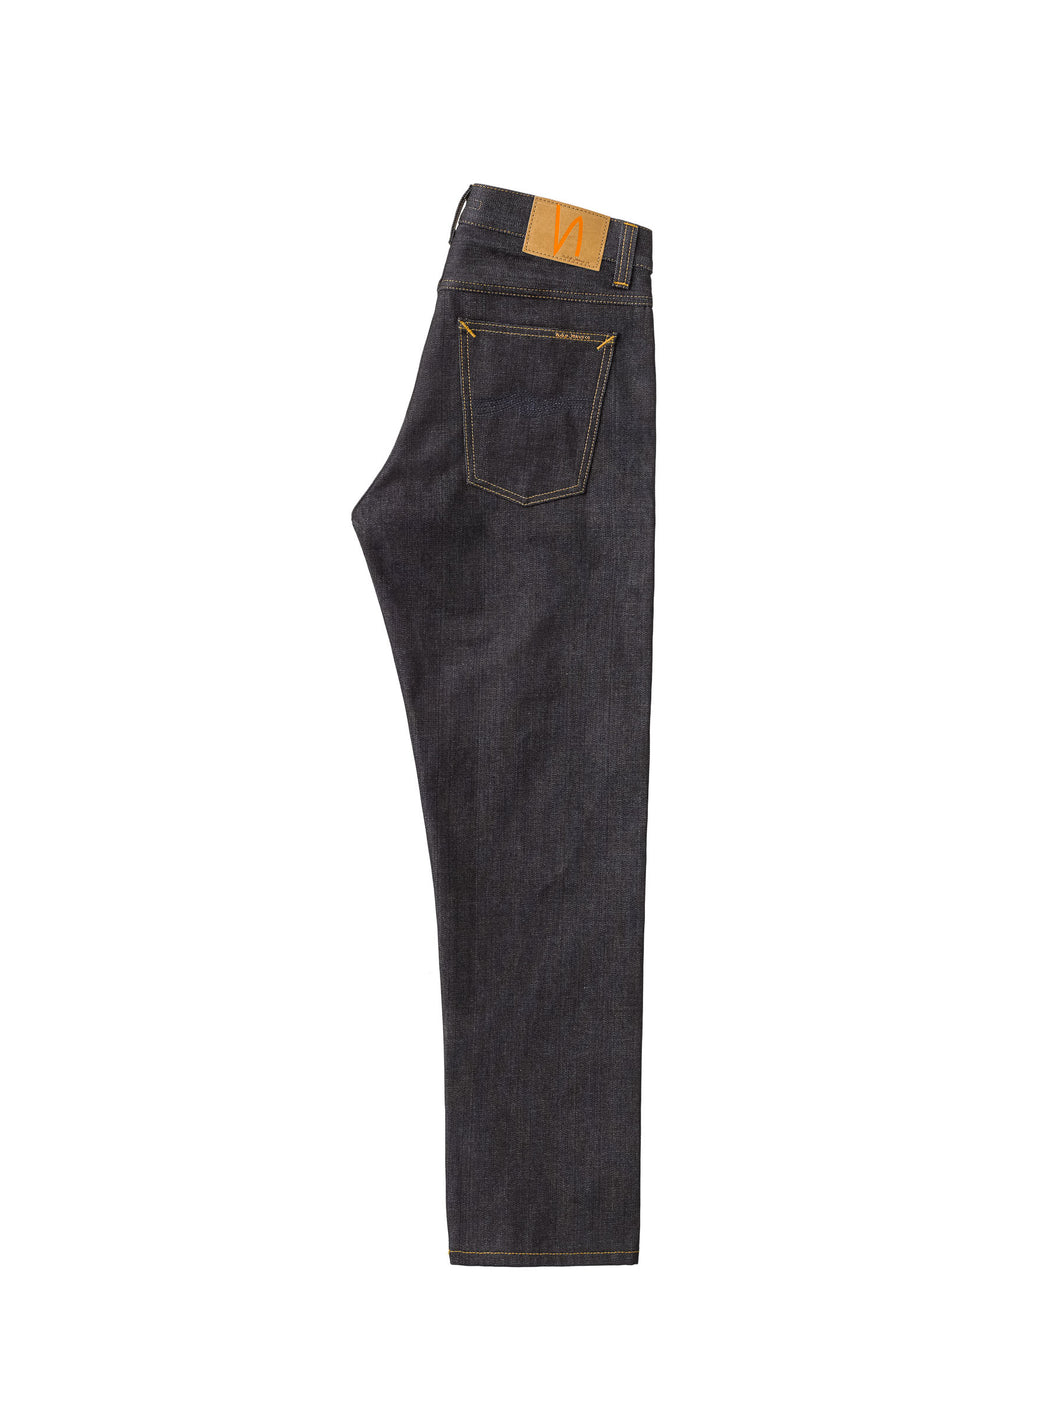 Nudie Jeans Co. Gritty Jackson Jean Dry Classic Navy